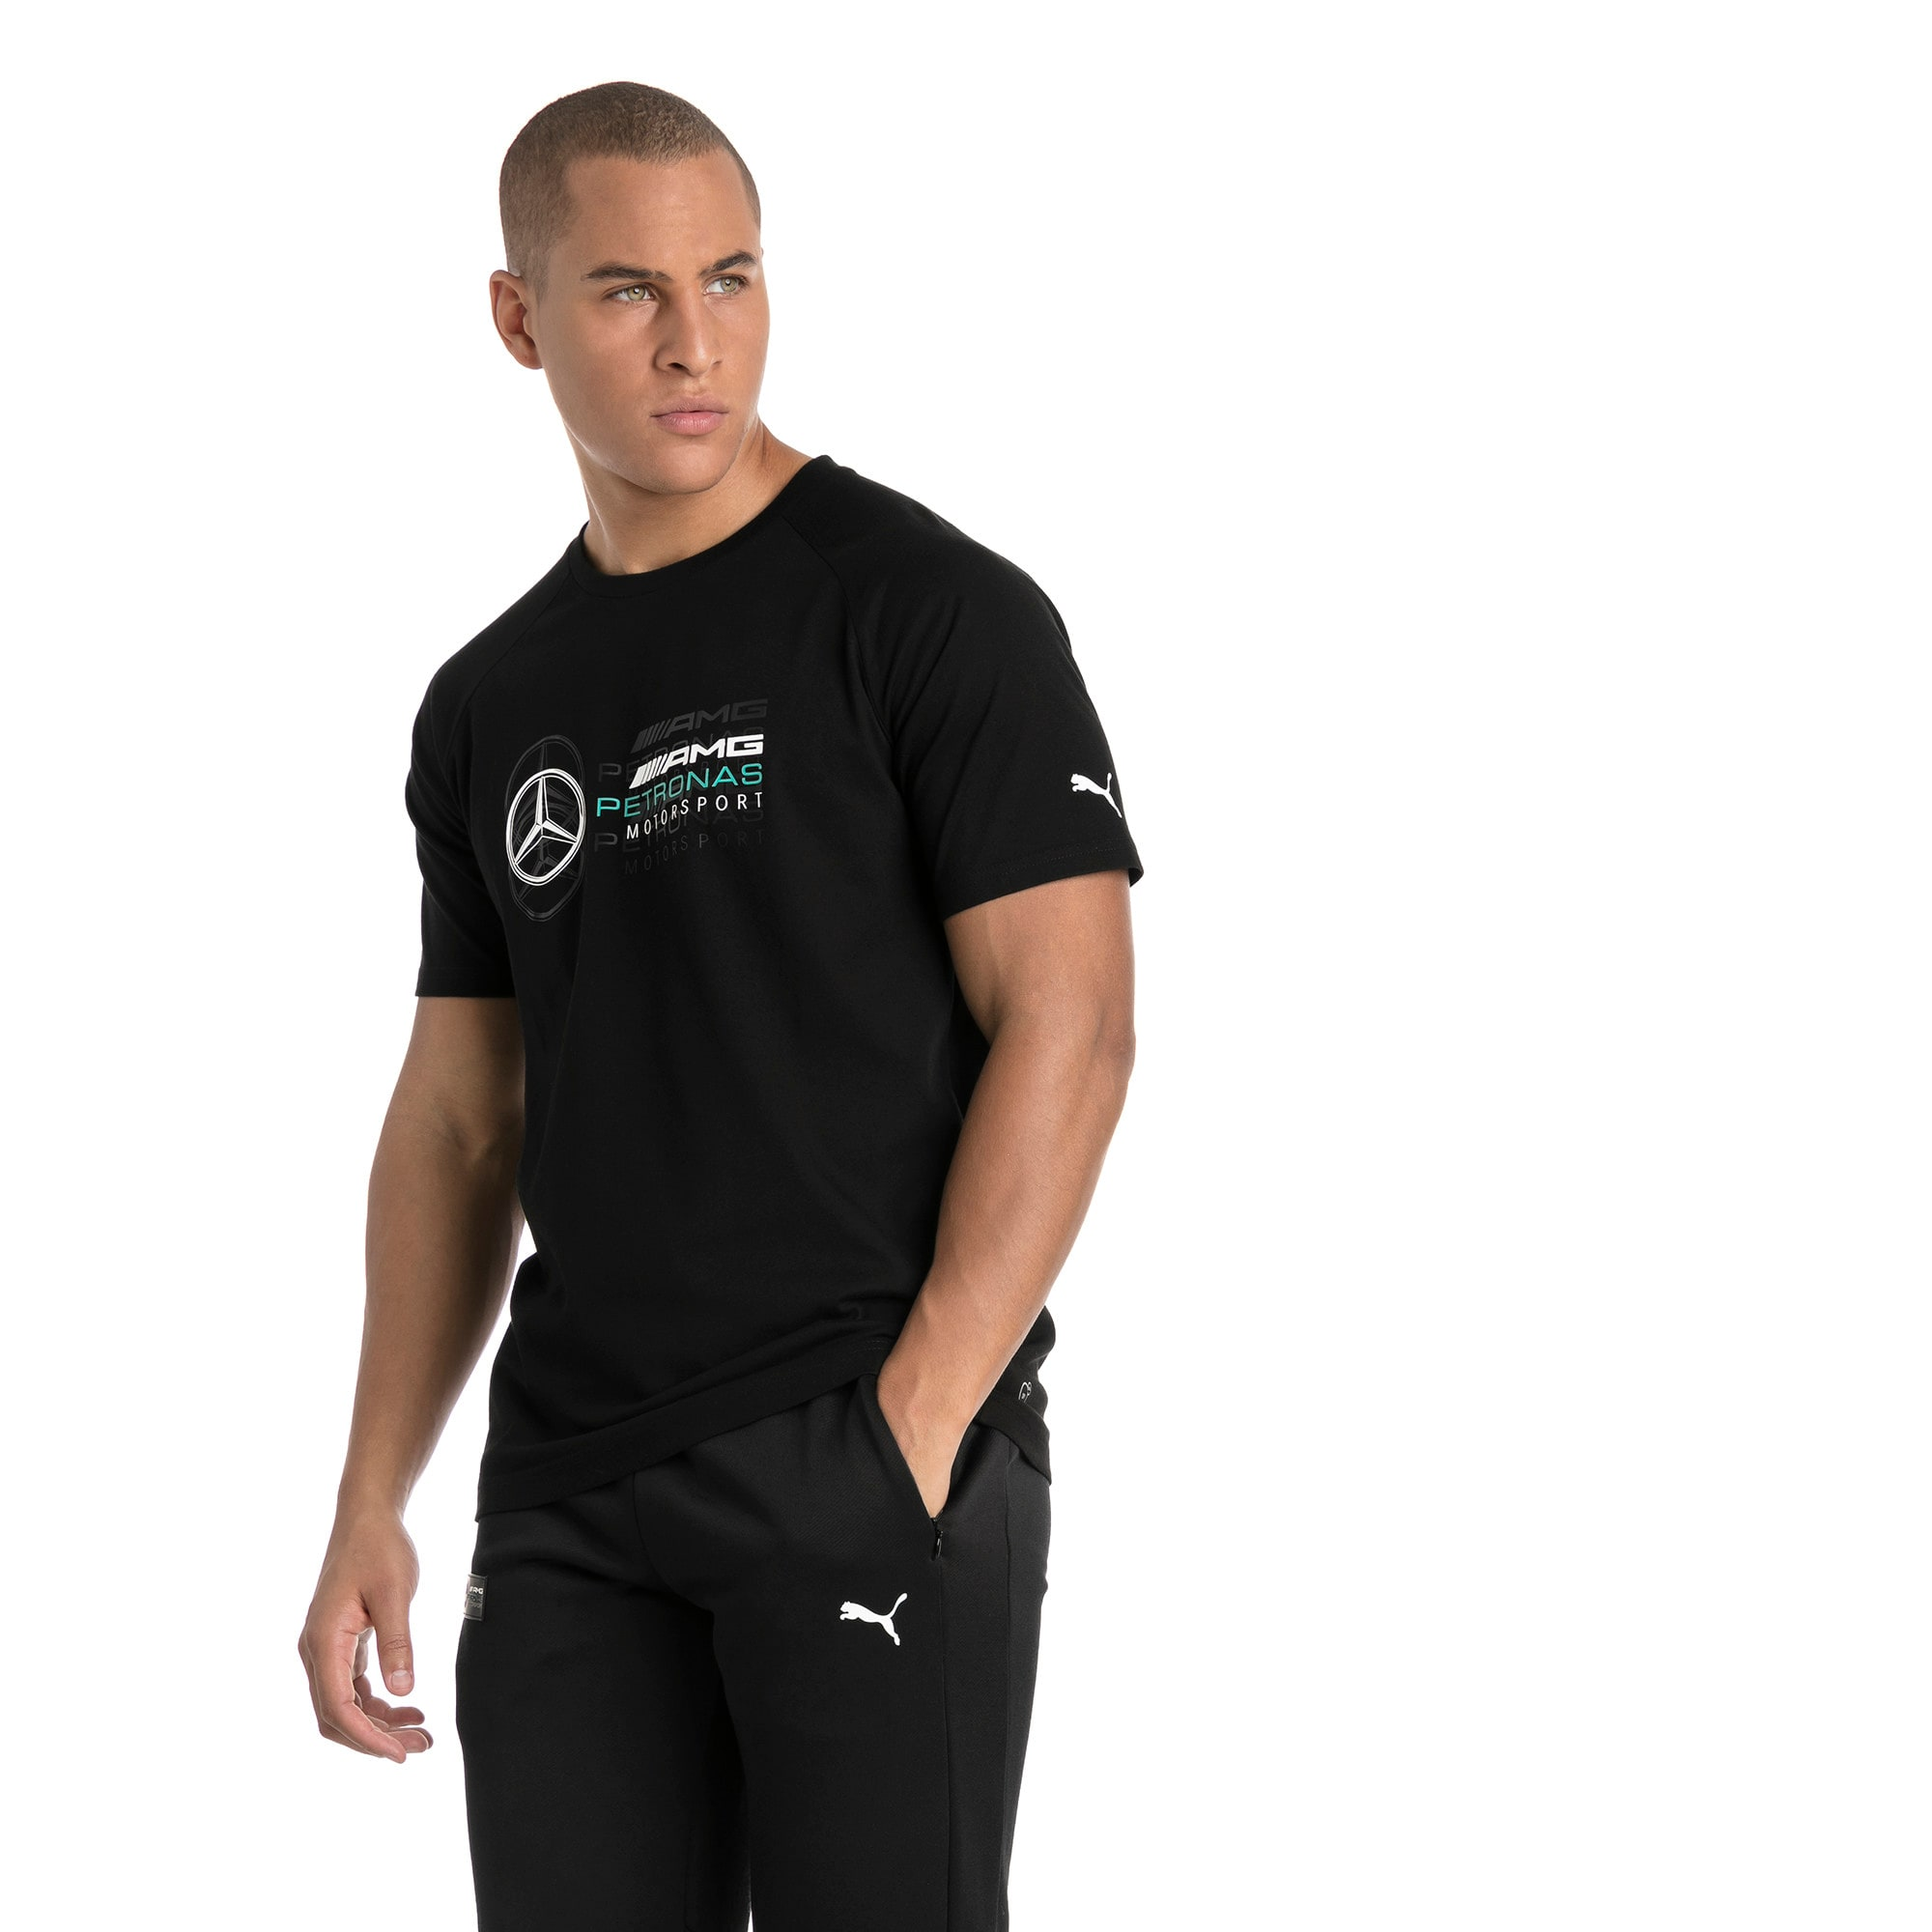 Thumbnail 1 of MERCEDES AMG PETRONAS Men's Logo T-Shirt, Puma Black, medium